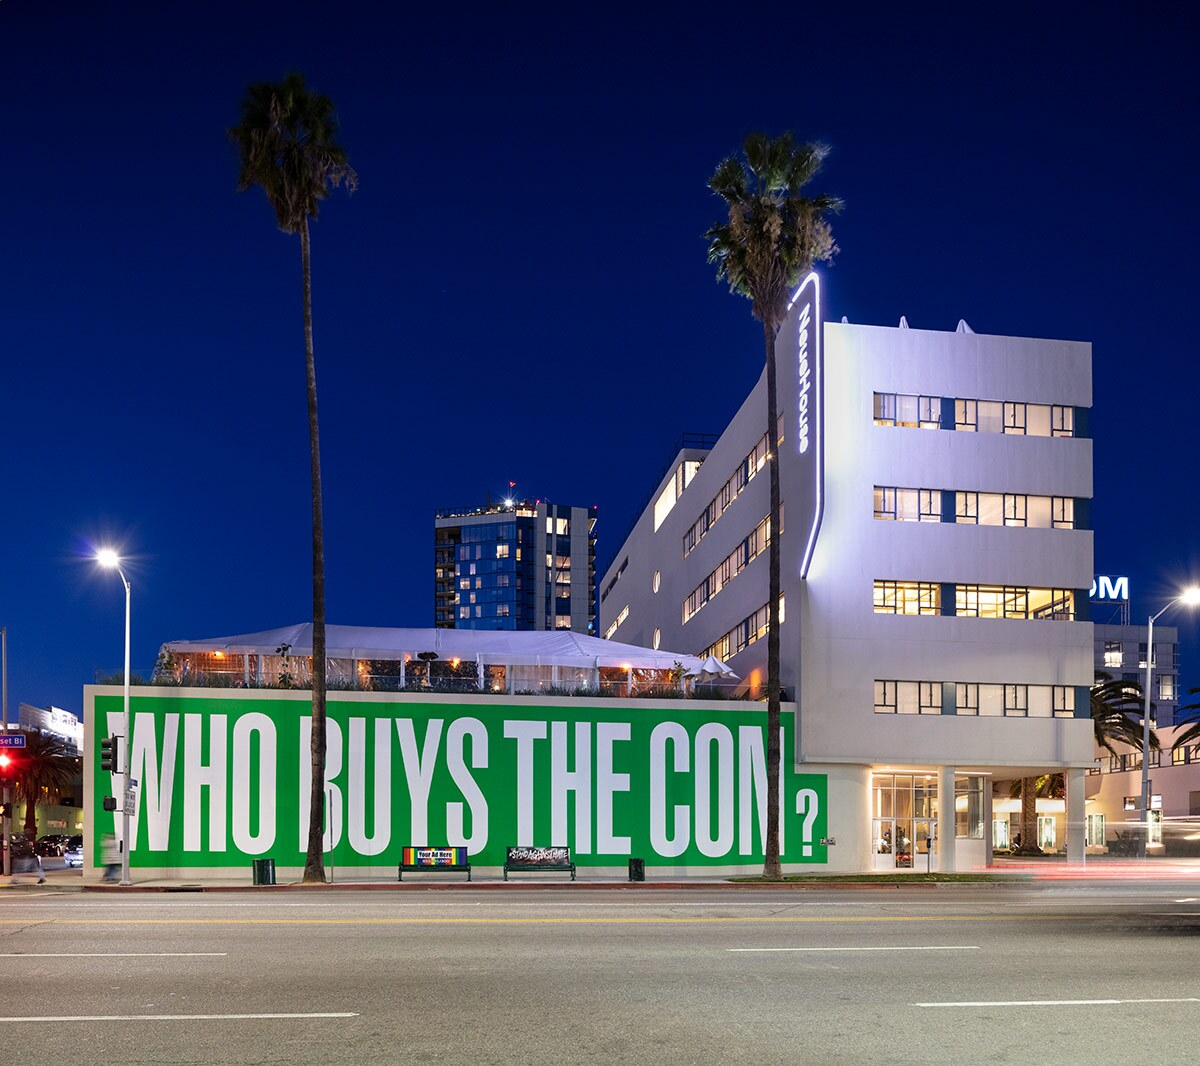 """Barbara Kruger's new mural at the NeueHouse Hollywood reads """"Who buys the con?"""" as part of her """"Untitled (Questions)"""" project. 